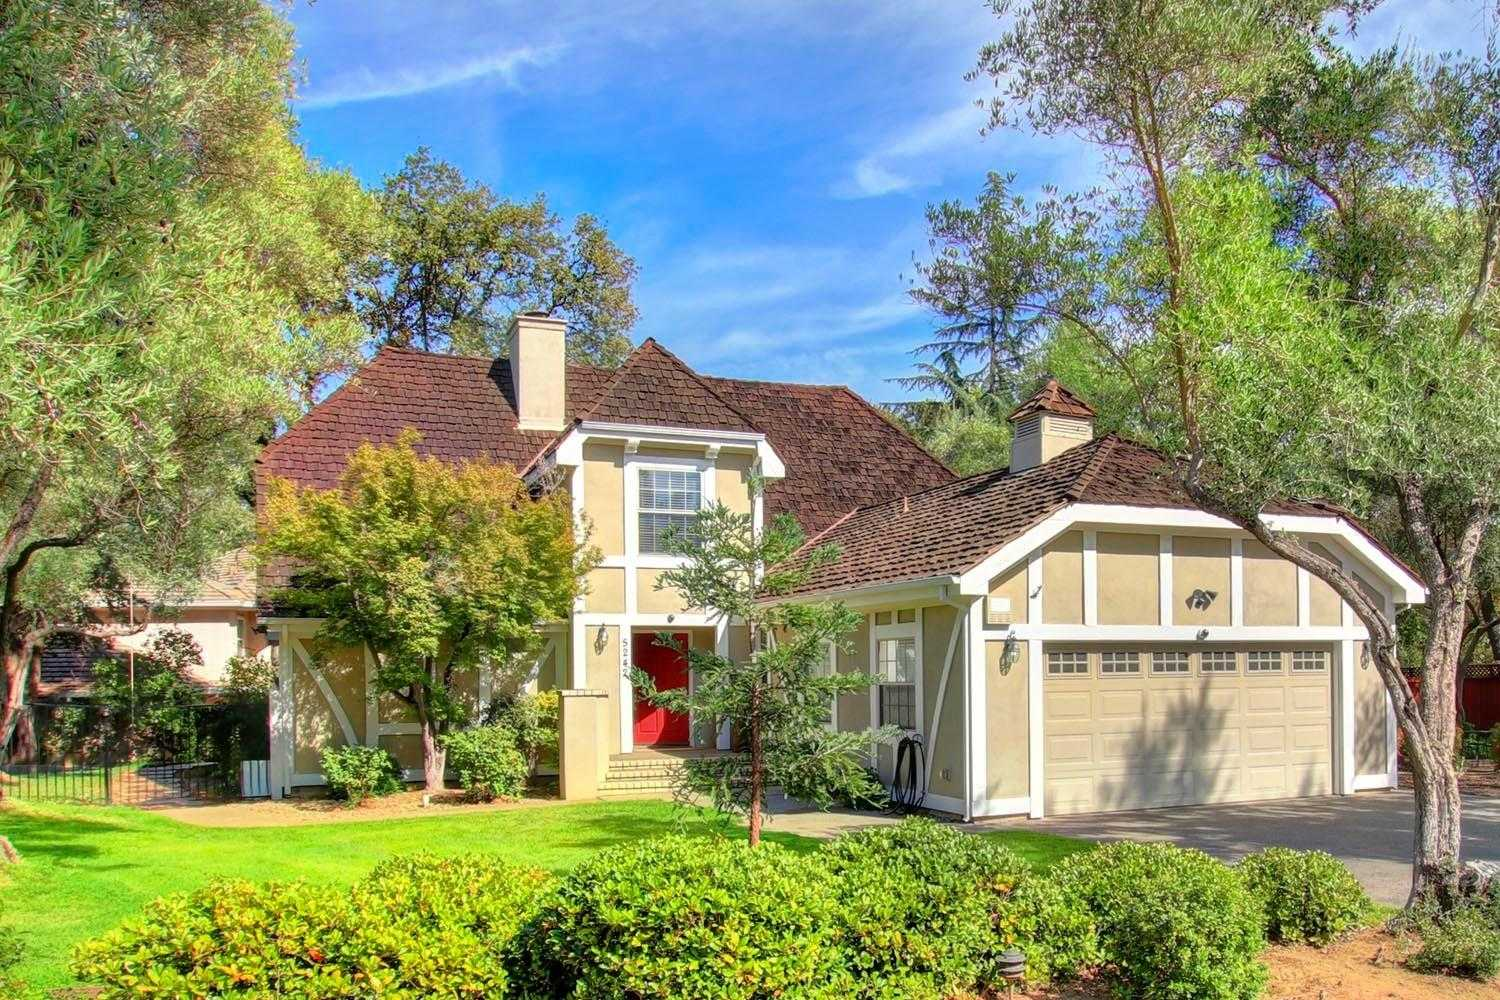 5242 Fair Oaks (Private Lane) Boulevard Carmichael, CA 95608